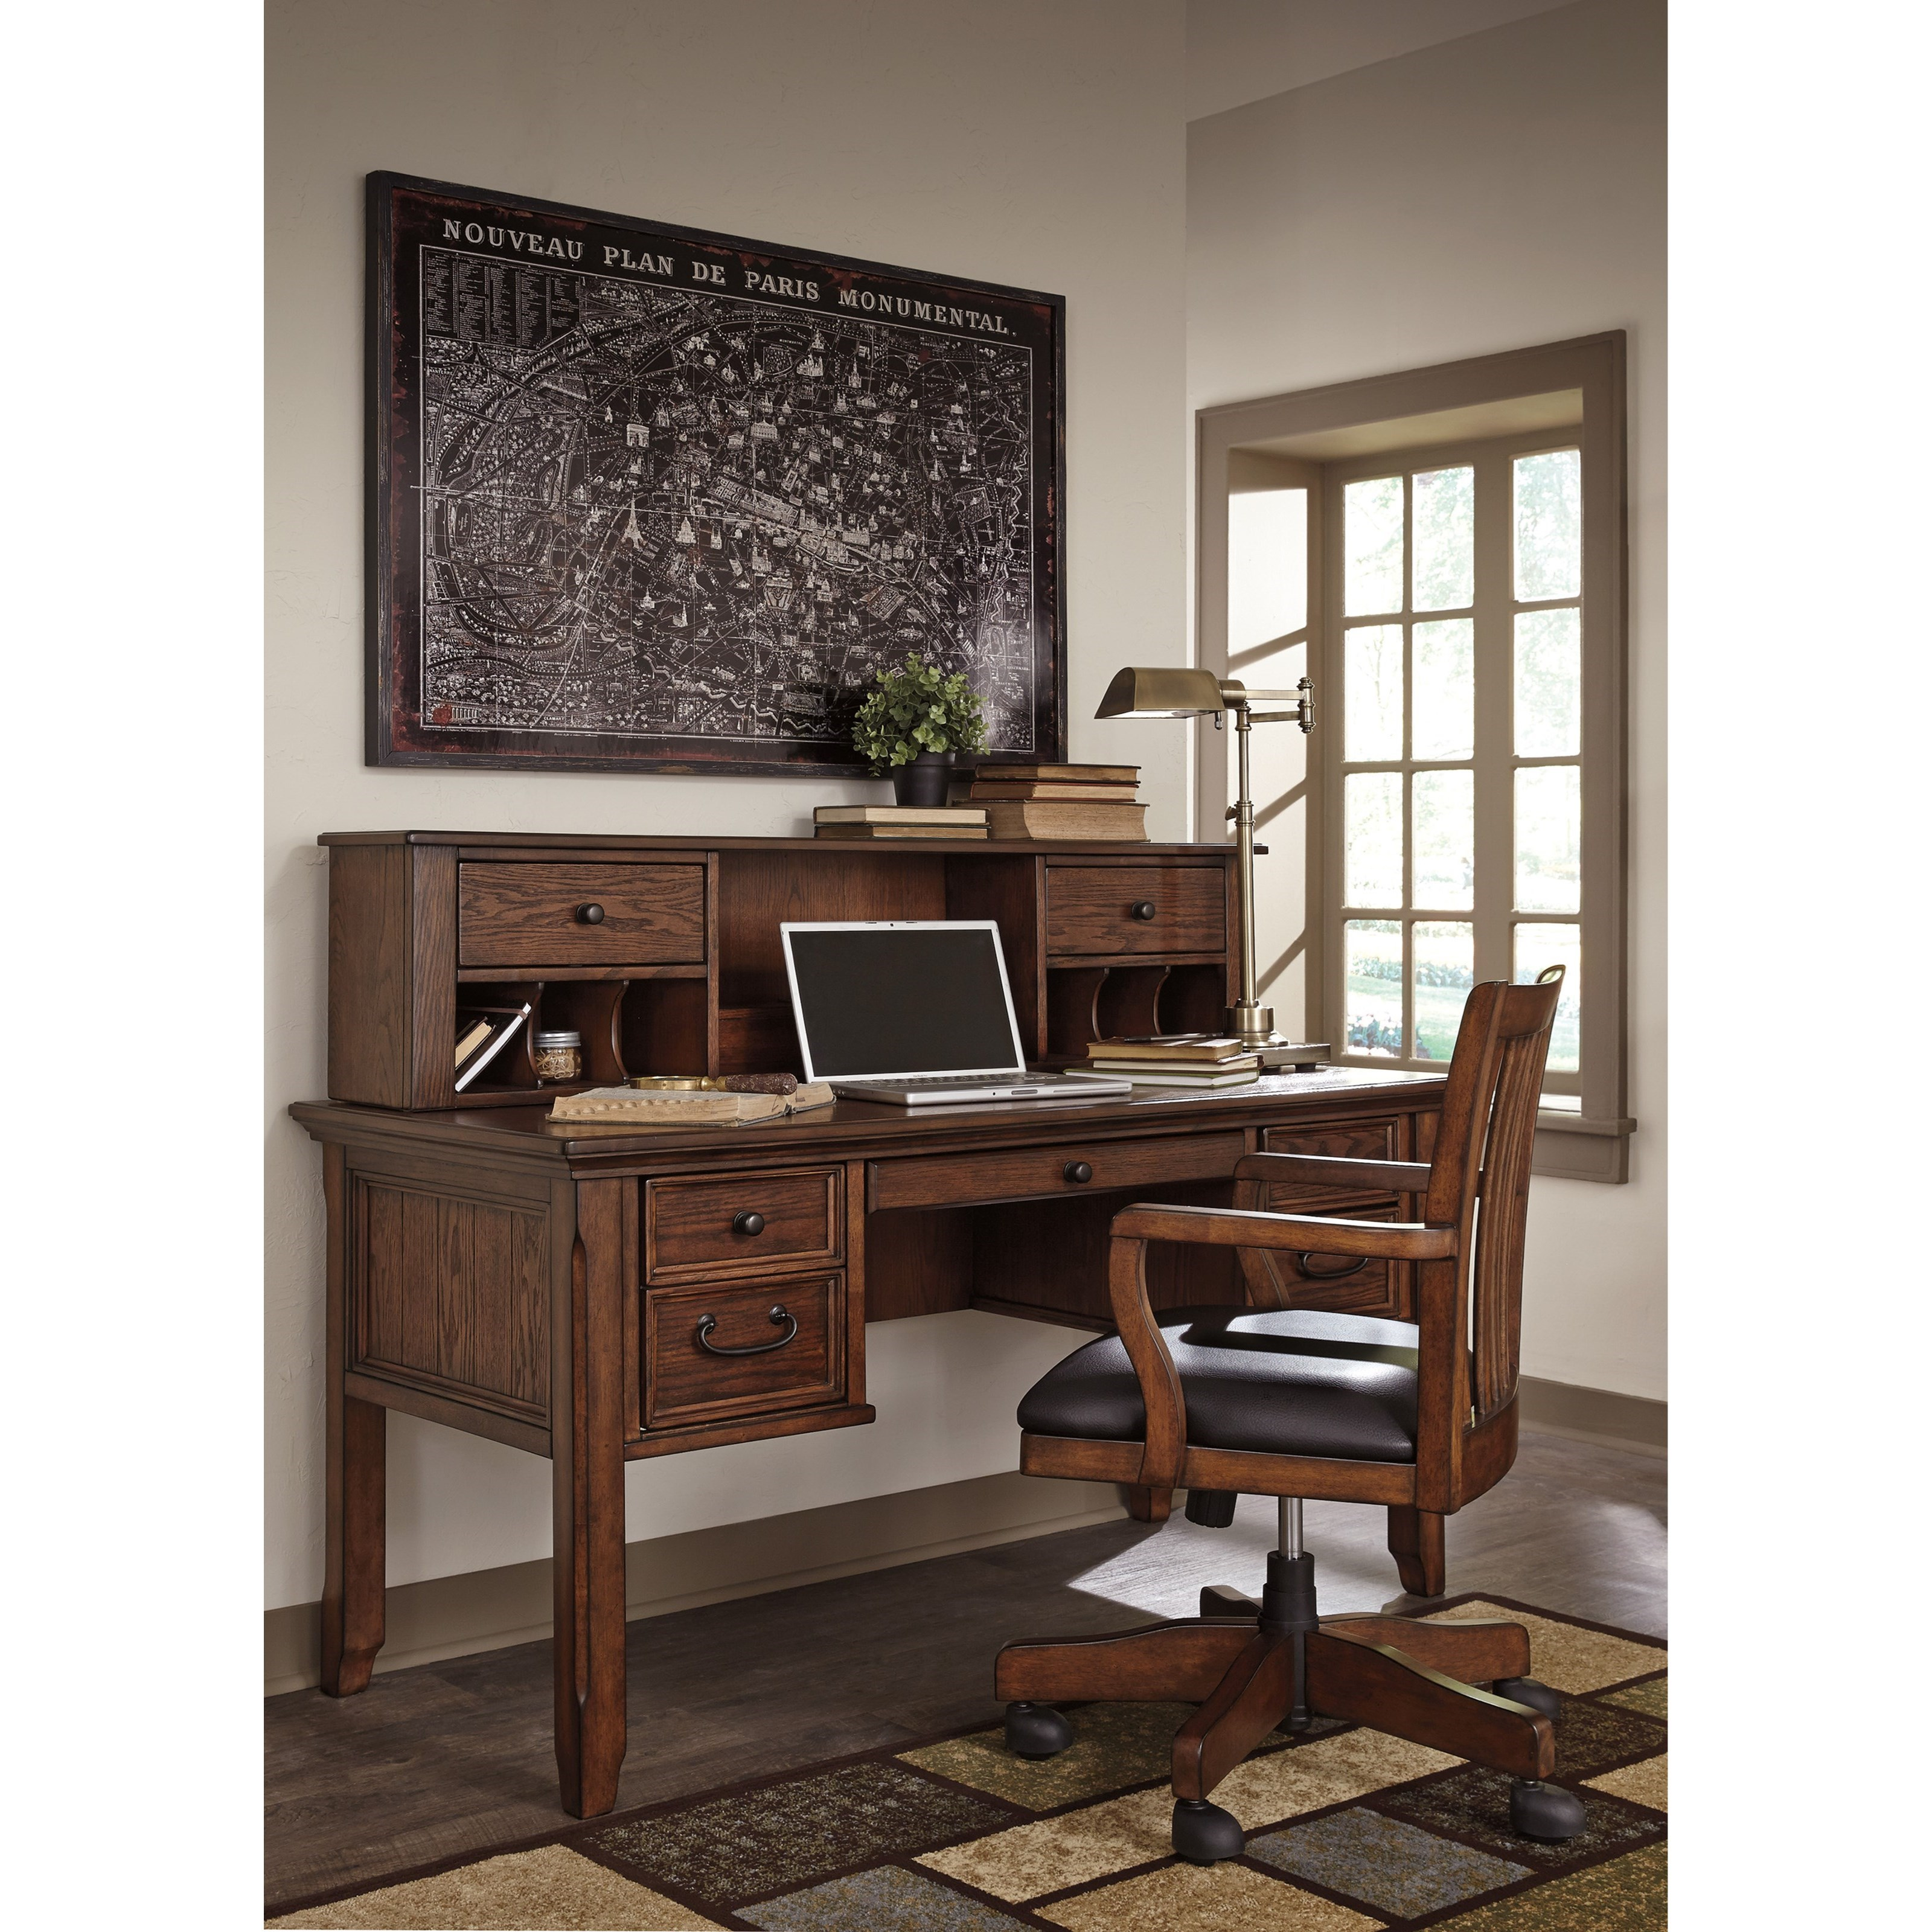 Home fice Swivel Desk Chair with Slat Back by Signature Design